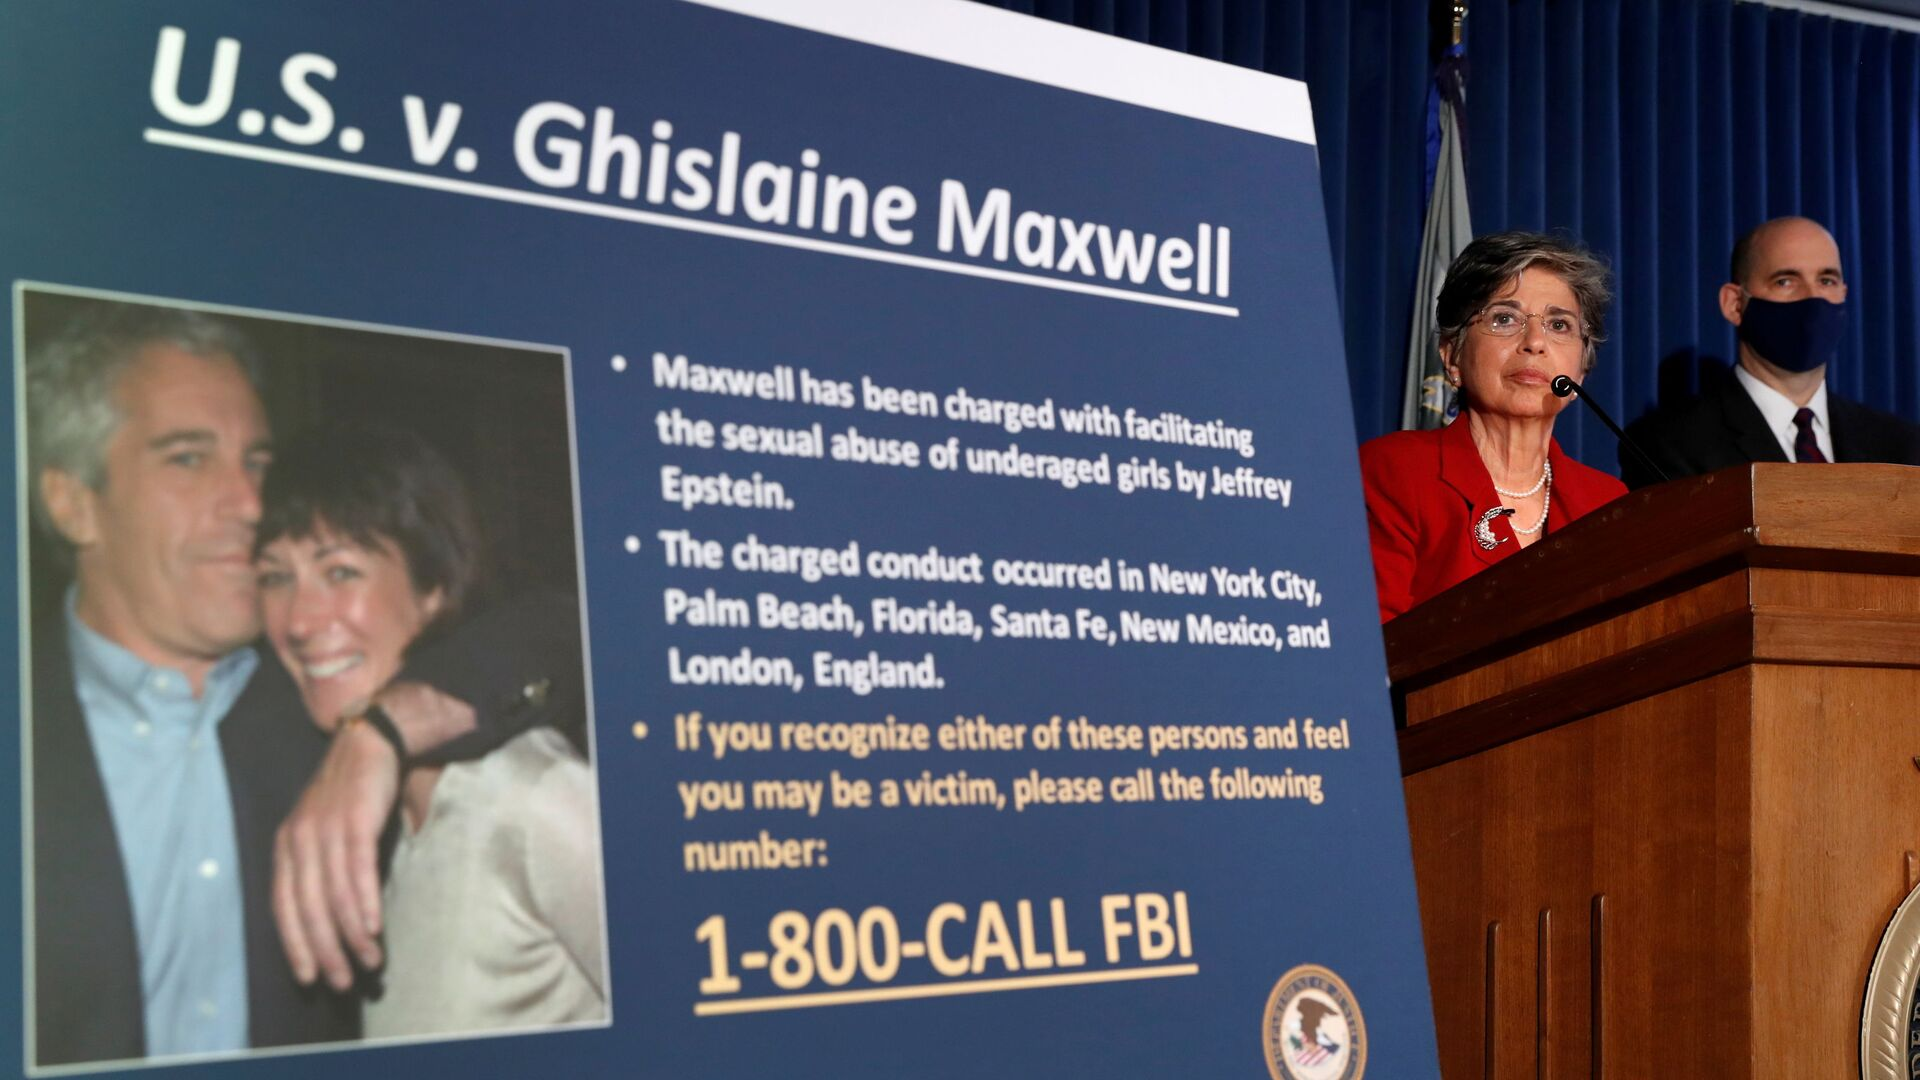 FILE PHOTO: Audrey Strauss, acting U.S. attorney for the Southern District of New York, speaks alongside William F. Sweeney Jr., assistant director-in-charge of the New York Office, at a news conference announcing charges against Ghislaine Maxwell for her alleged role in the sexual exploitation and abuse of minor girls by Jeffrey Epstein in New York City, New York, 2 July 2020 - Sputnik International, 1920, 28.07.2021